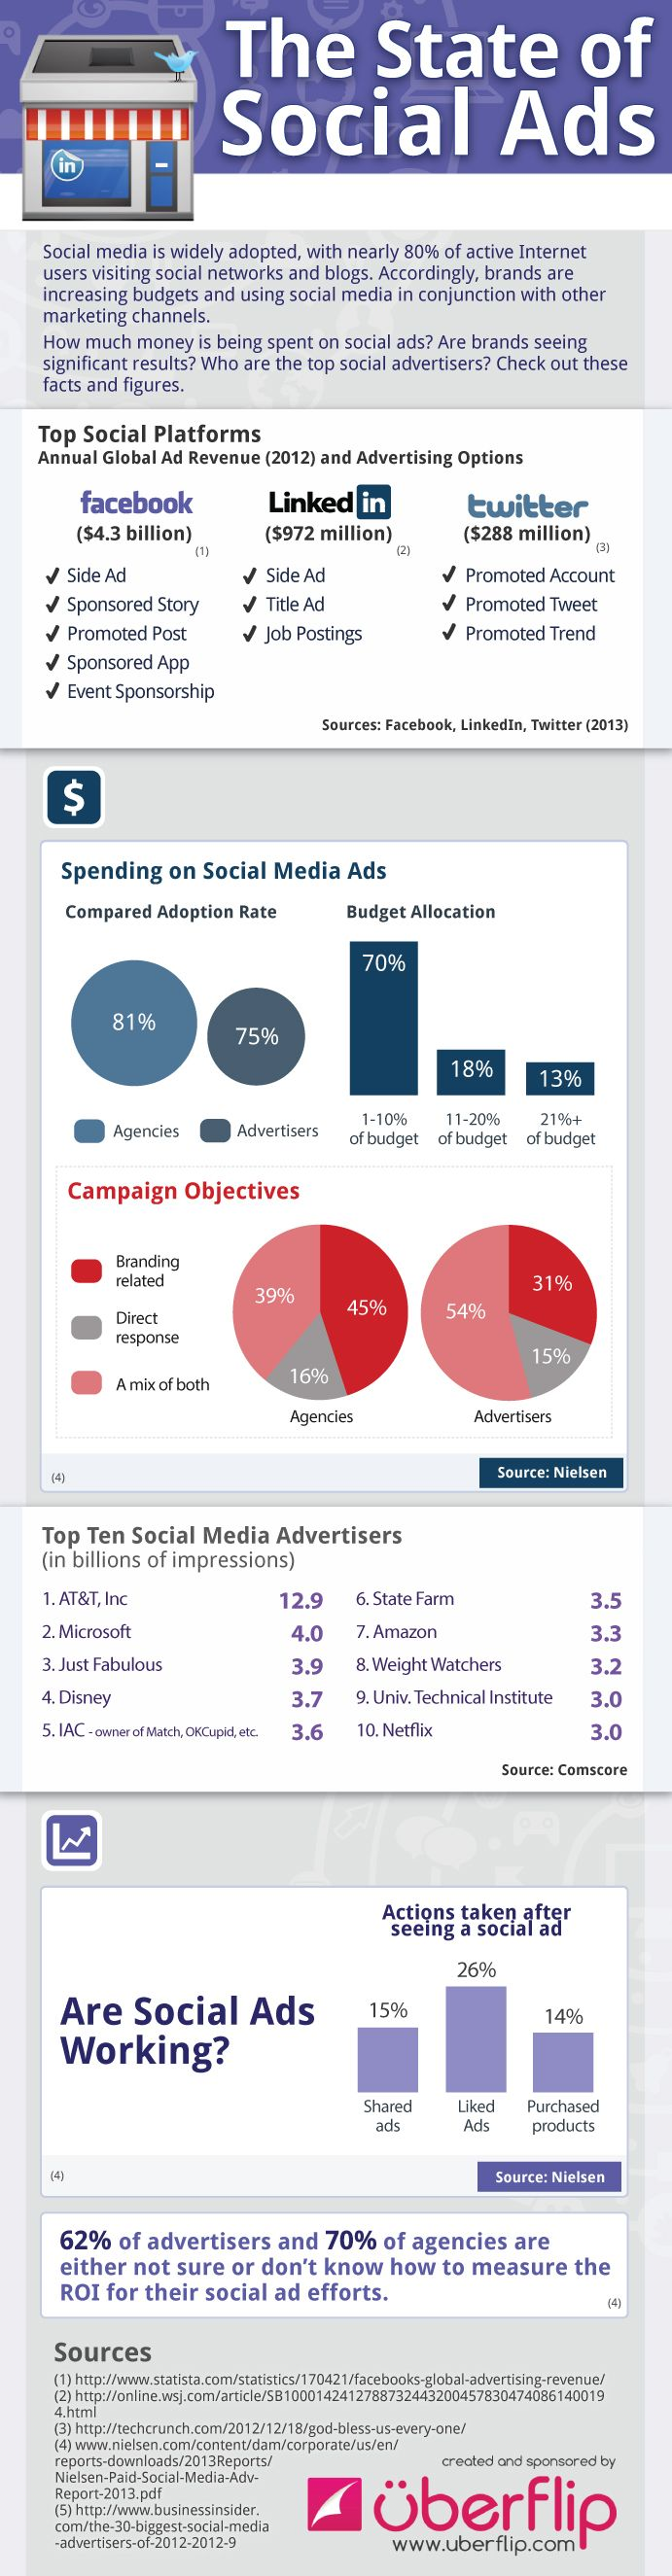 The State Of Social Ads [INFOGRAPHIC]